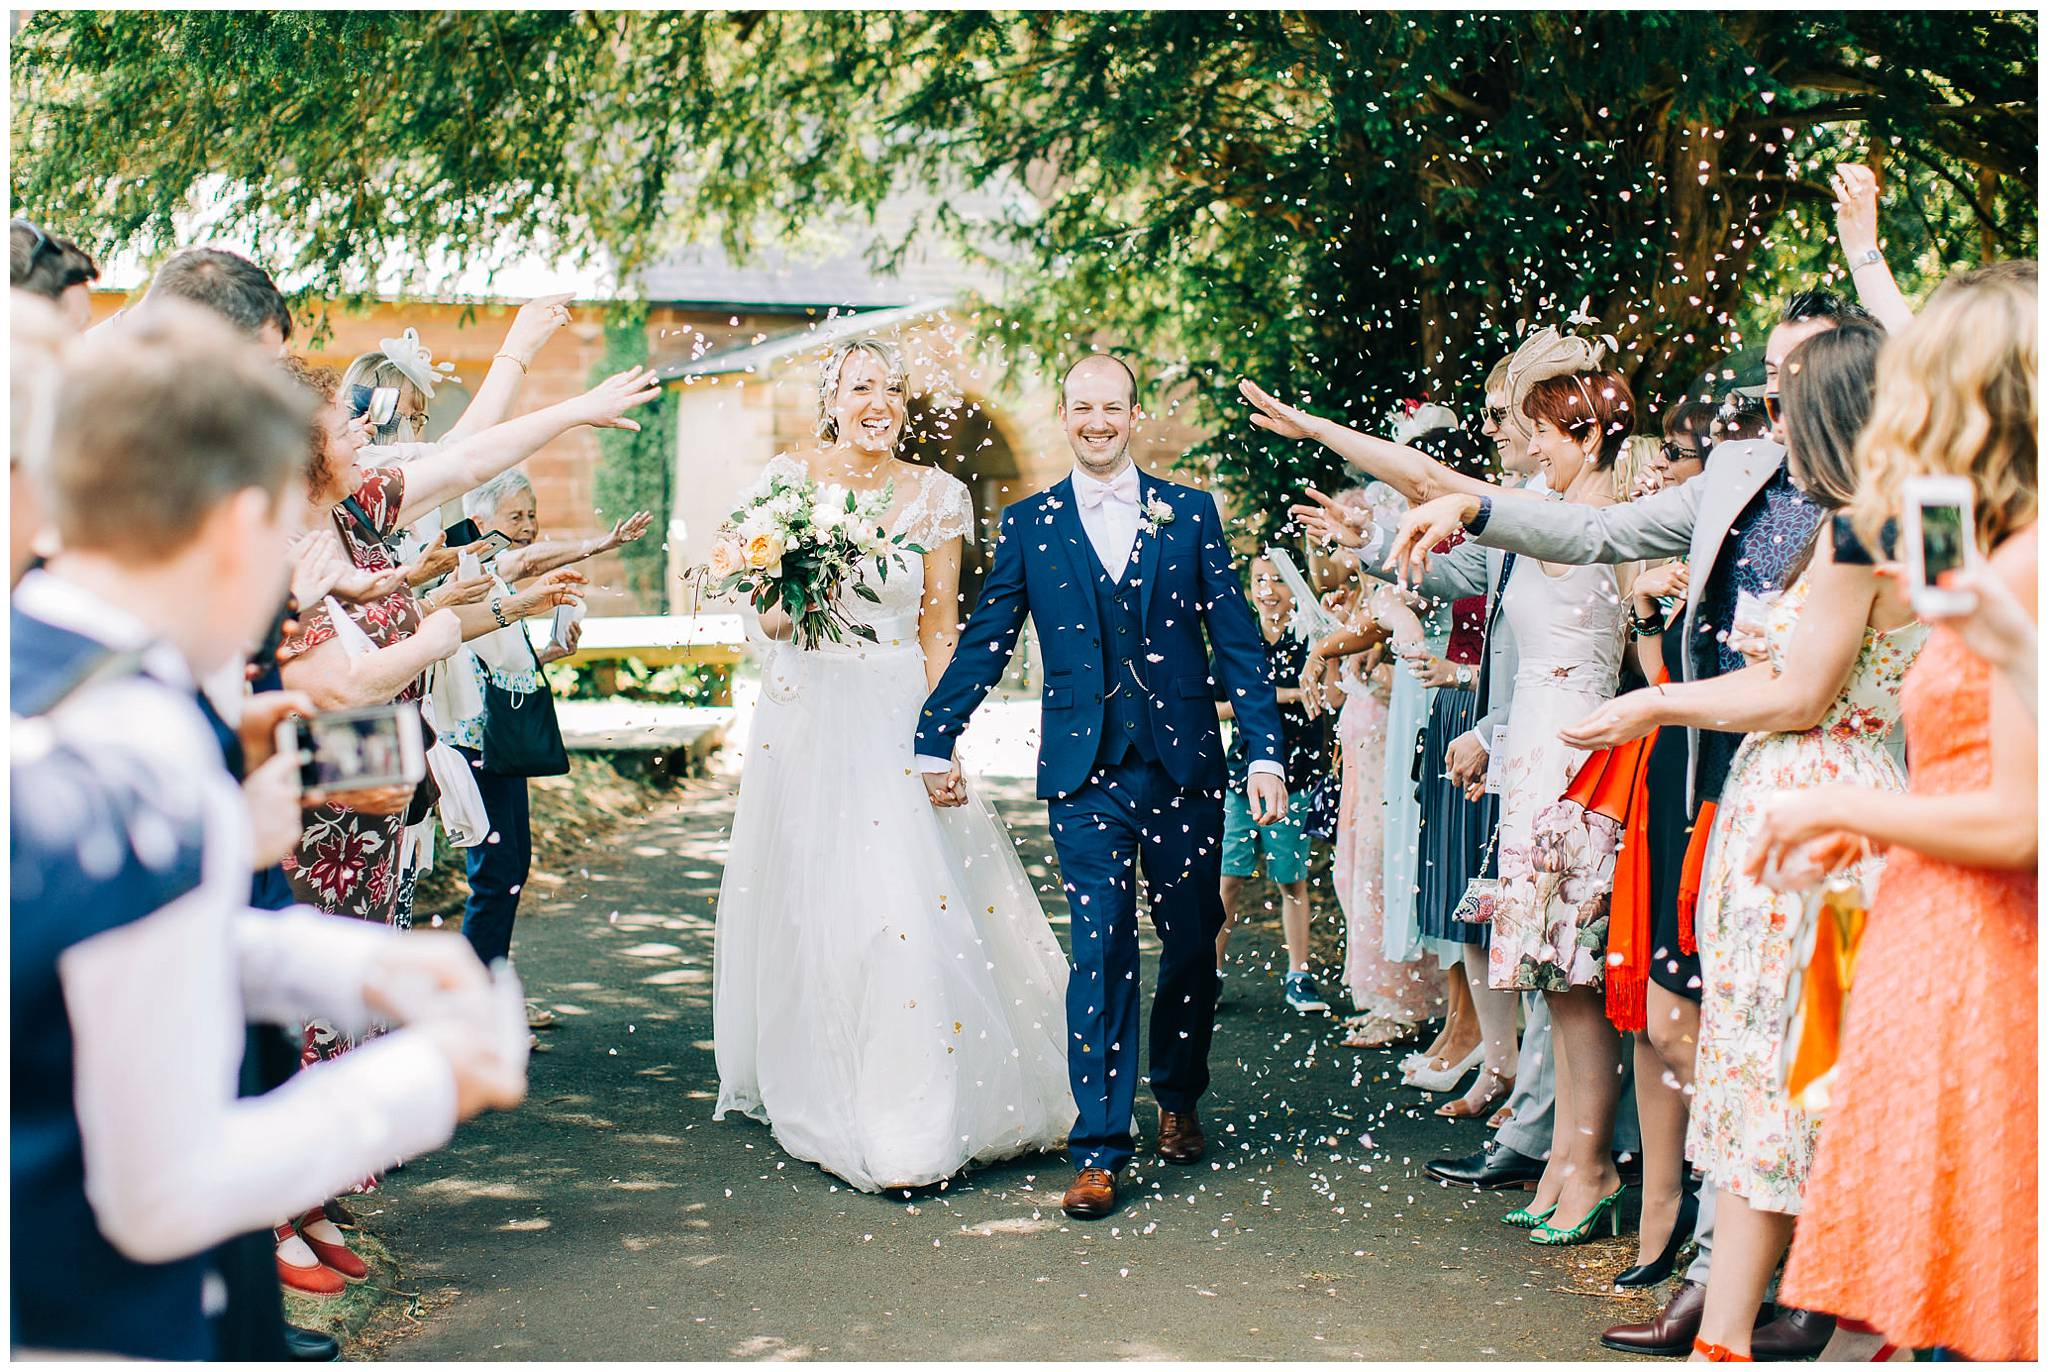 bride and groom walking hand in hand while guests throw white confetti at them